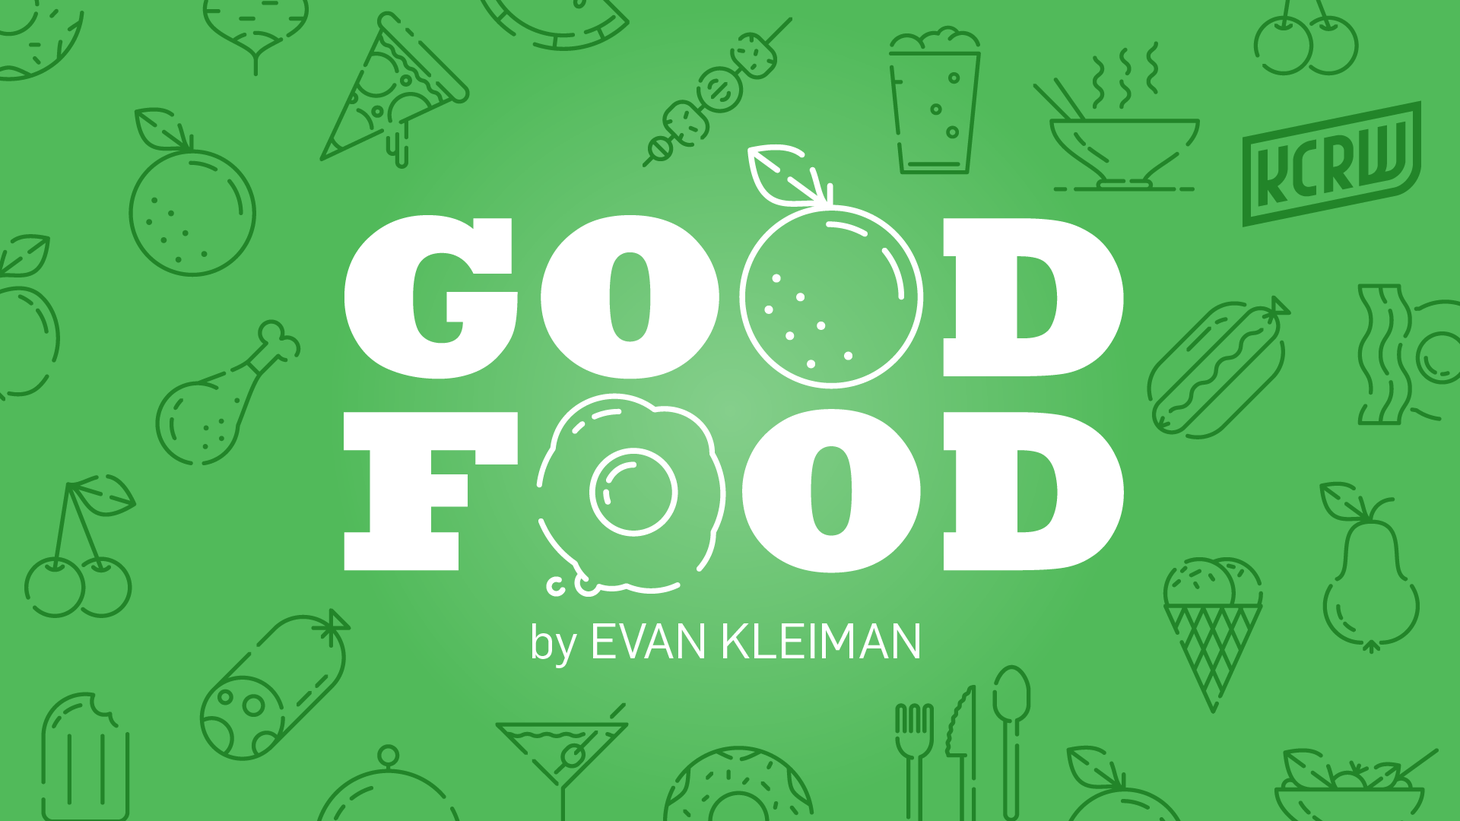 There's nothing queer about Ted Allen's take on food, he just likes good, simple dishes prepared well. Carl Chu barks up a different tree with his trip to X'otik Kitchen. There won't be barking of any kind (or any animal noises for that matter) as Michelle Sass visits a new vegan restaurant. Michael Gerard tells us how to cook in an outdoor oven and Melissa Clark stops the chef midstride to get a recipe we can do at home. Mort Rosenblum tells us about the mysterious truffle and why we need it in our lives.